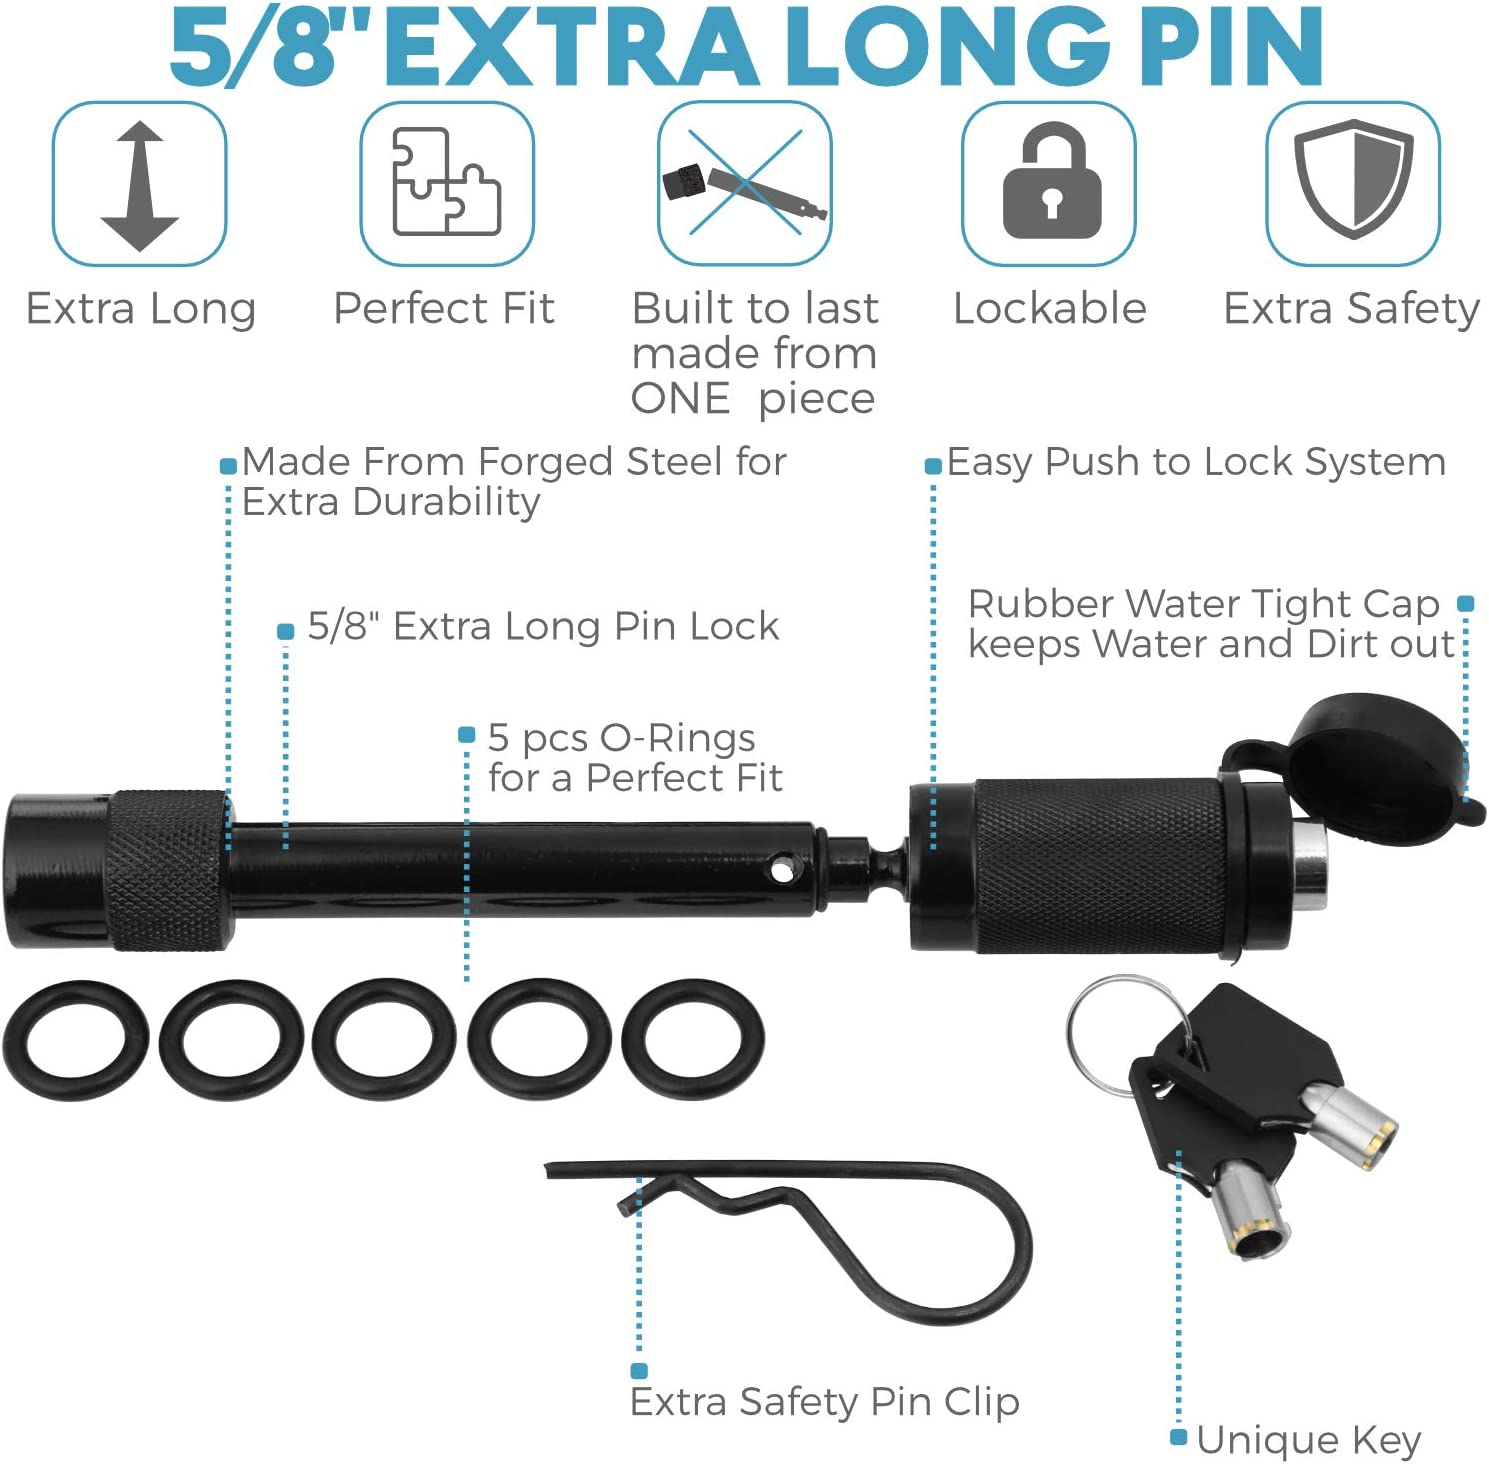 Heavy Duty Bag Rope 2 Shackle Hitch Receiver Off Road Pick Up Towing 3 x 30ft 30,000 lbs. 3//4 D Ring Shackles with Safety Ring 5//8 Locking Pin motormic Tow Strap Recovery Kit